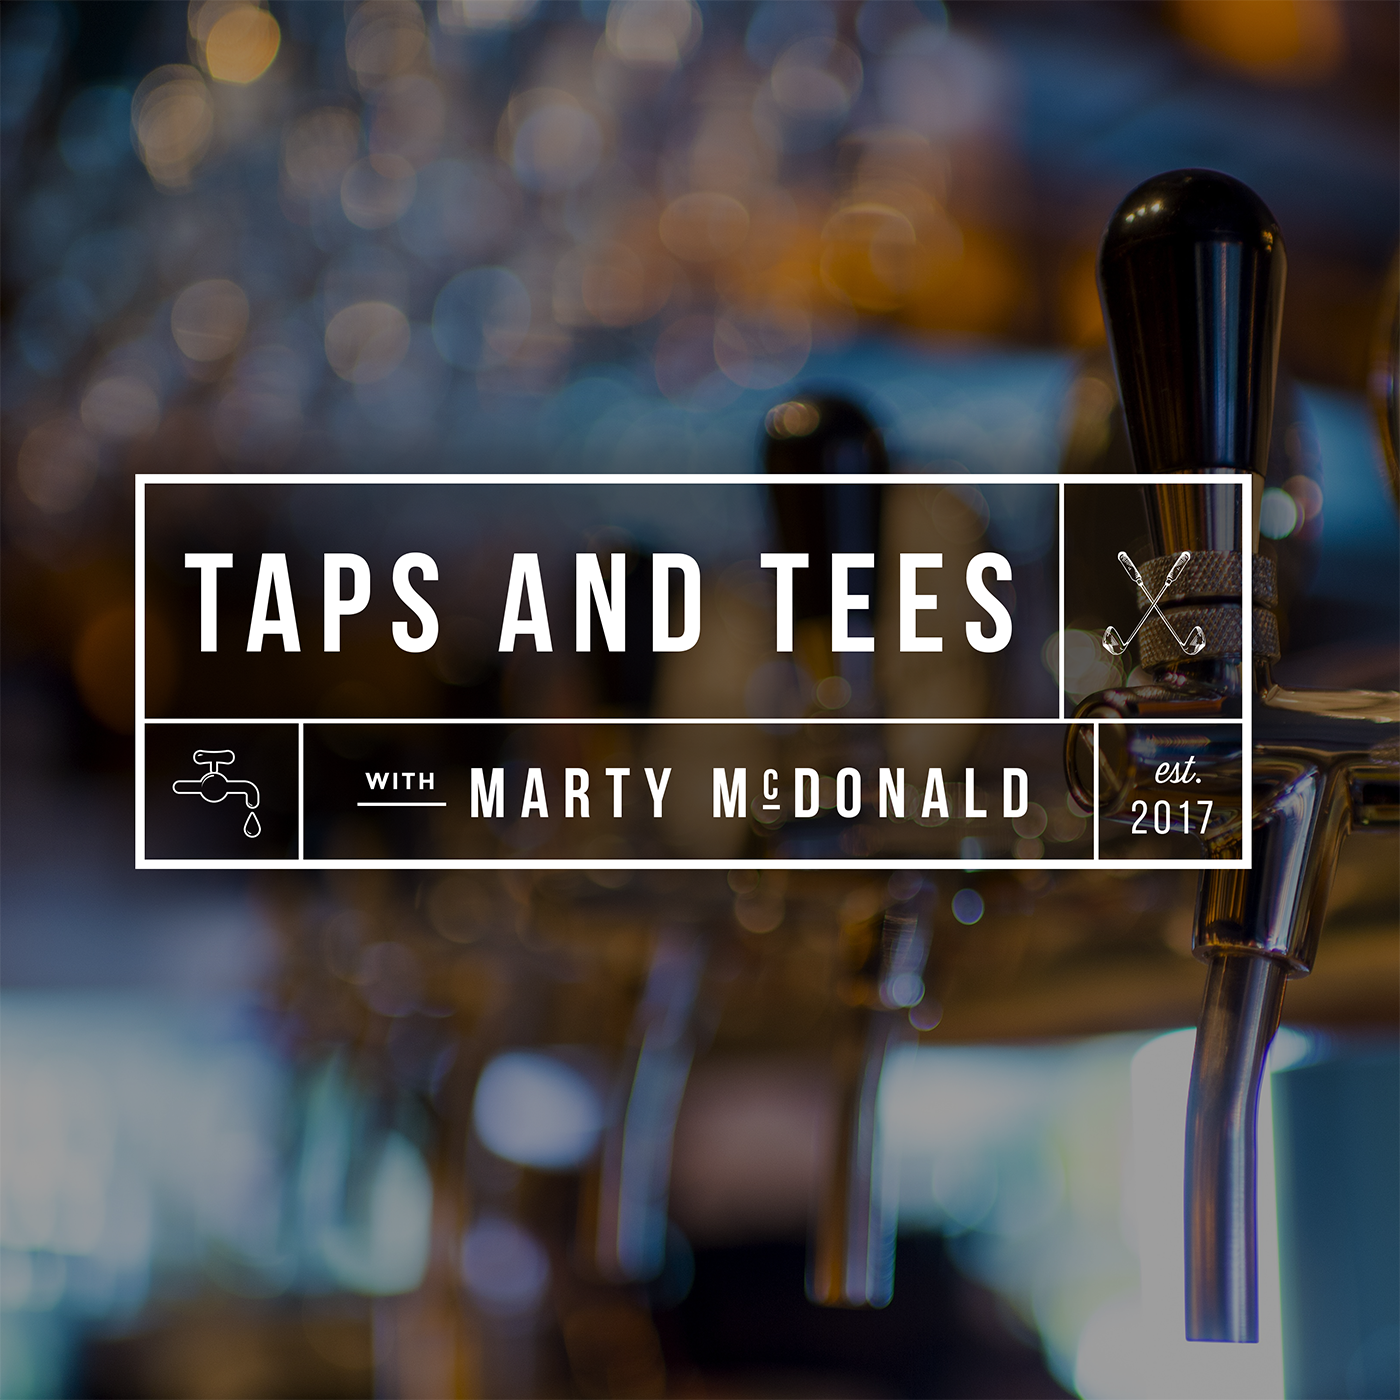 Taps and Tees